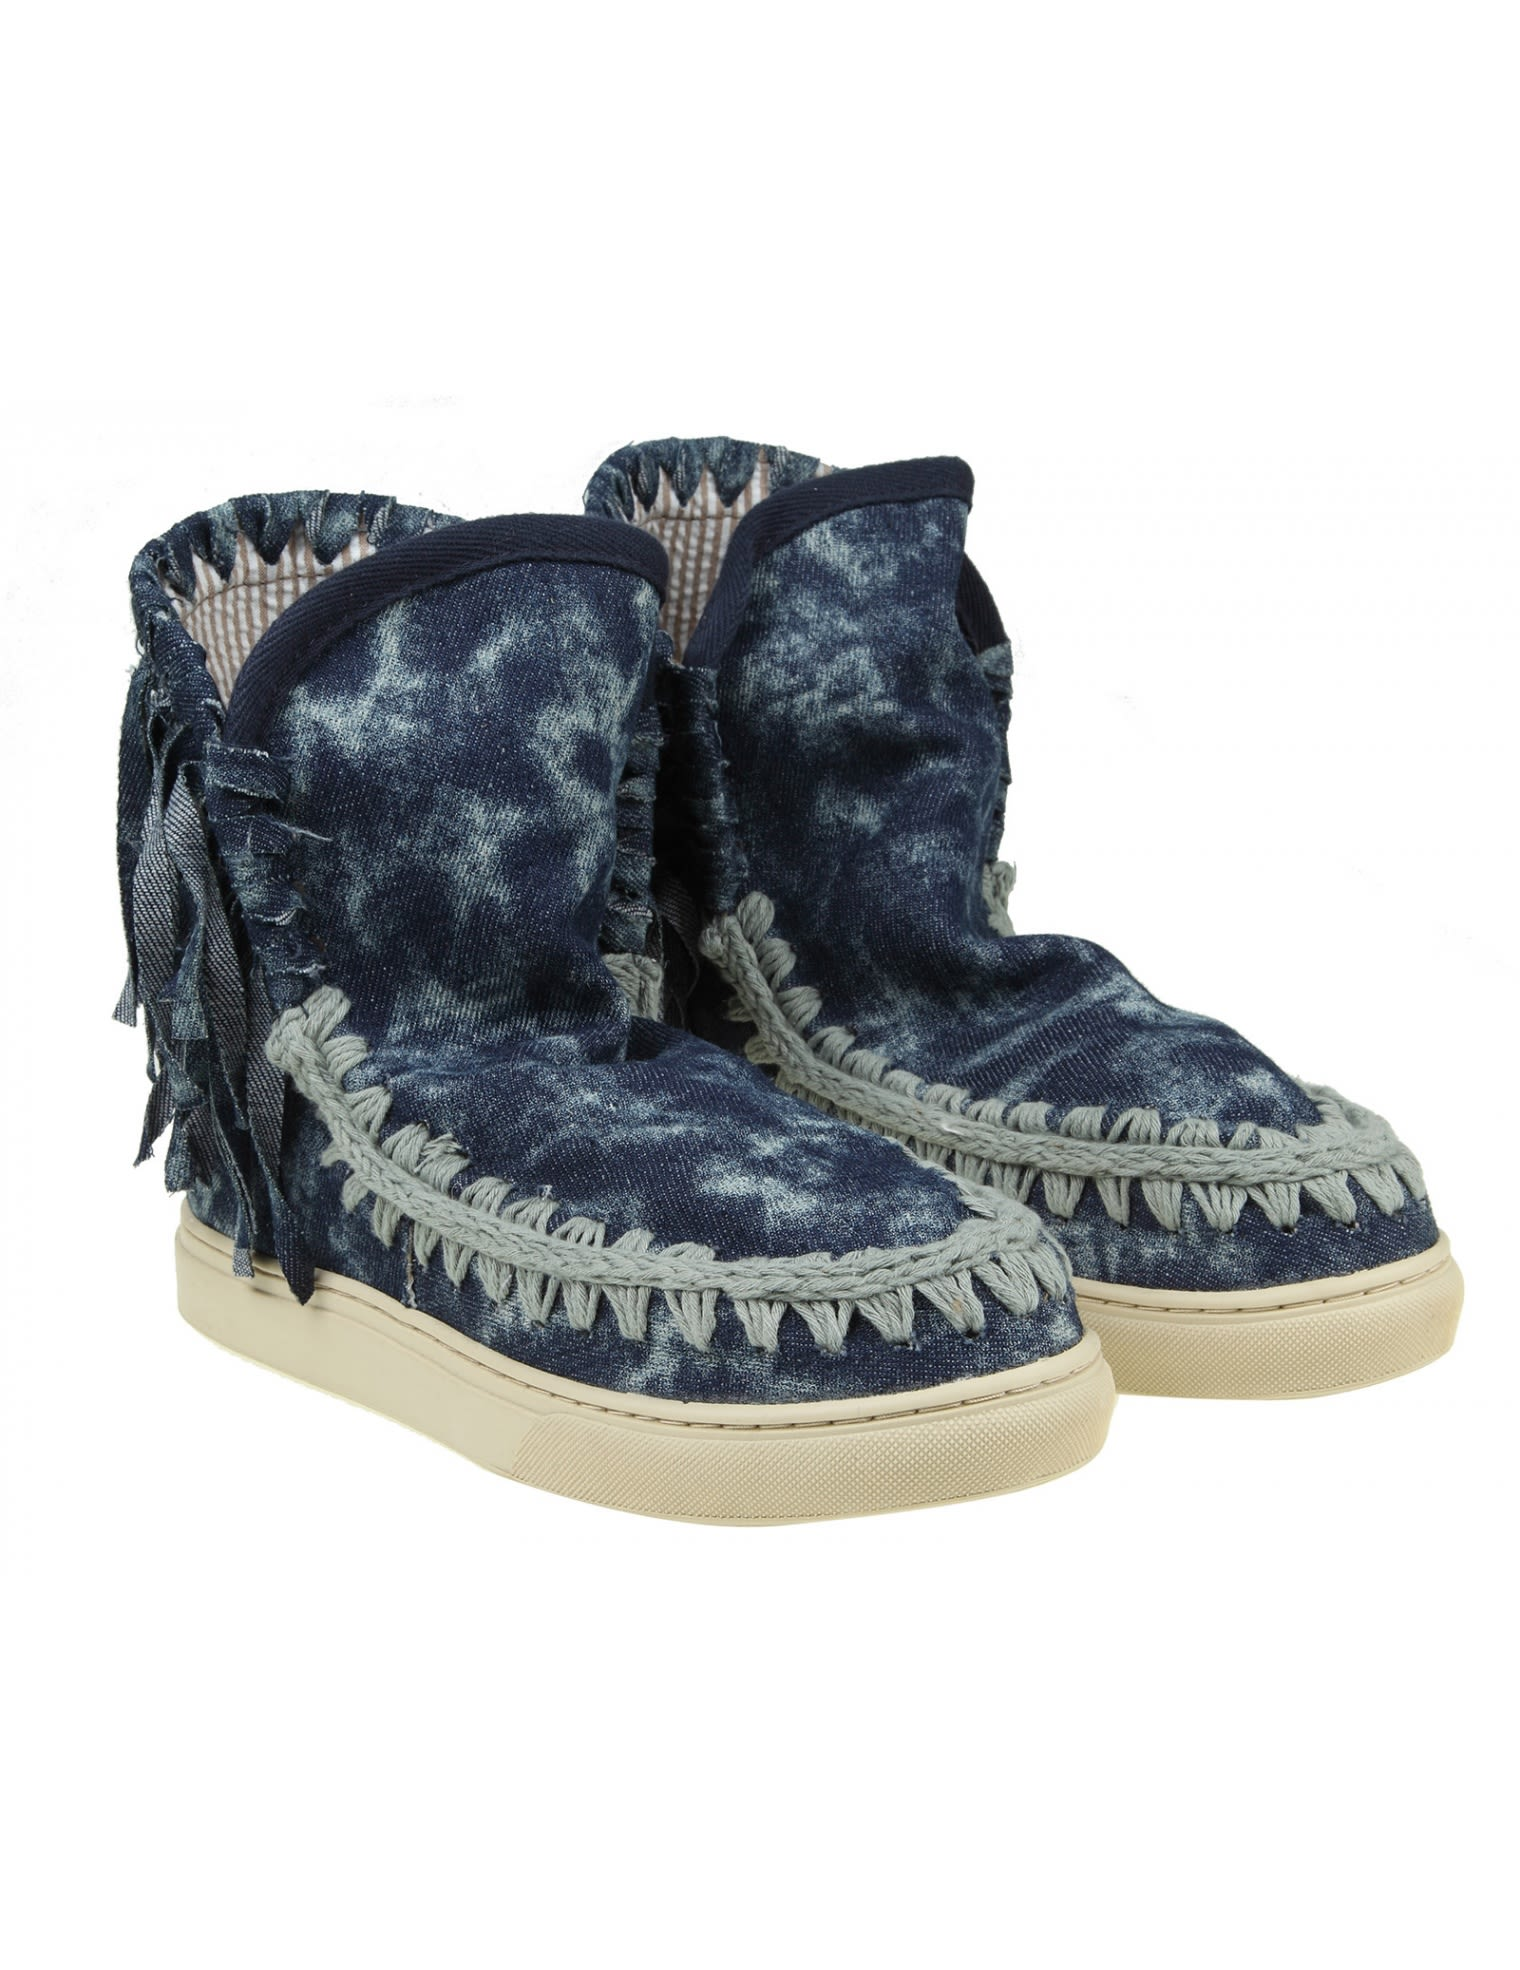 Online Cheapest  Blue Summer Eskimo Fringed sneakers Mou Clearance With Credit Card Outlet 2018 Newest VUAfNLoJt